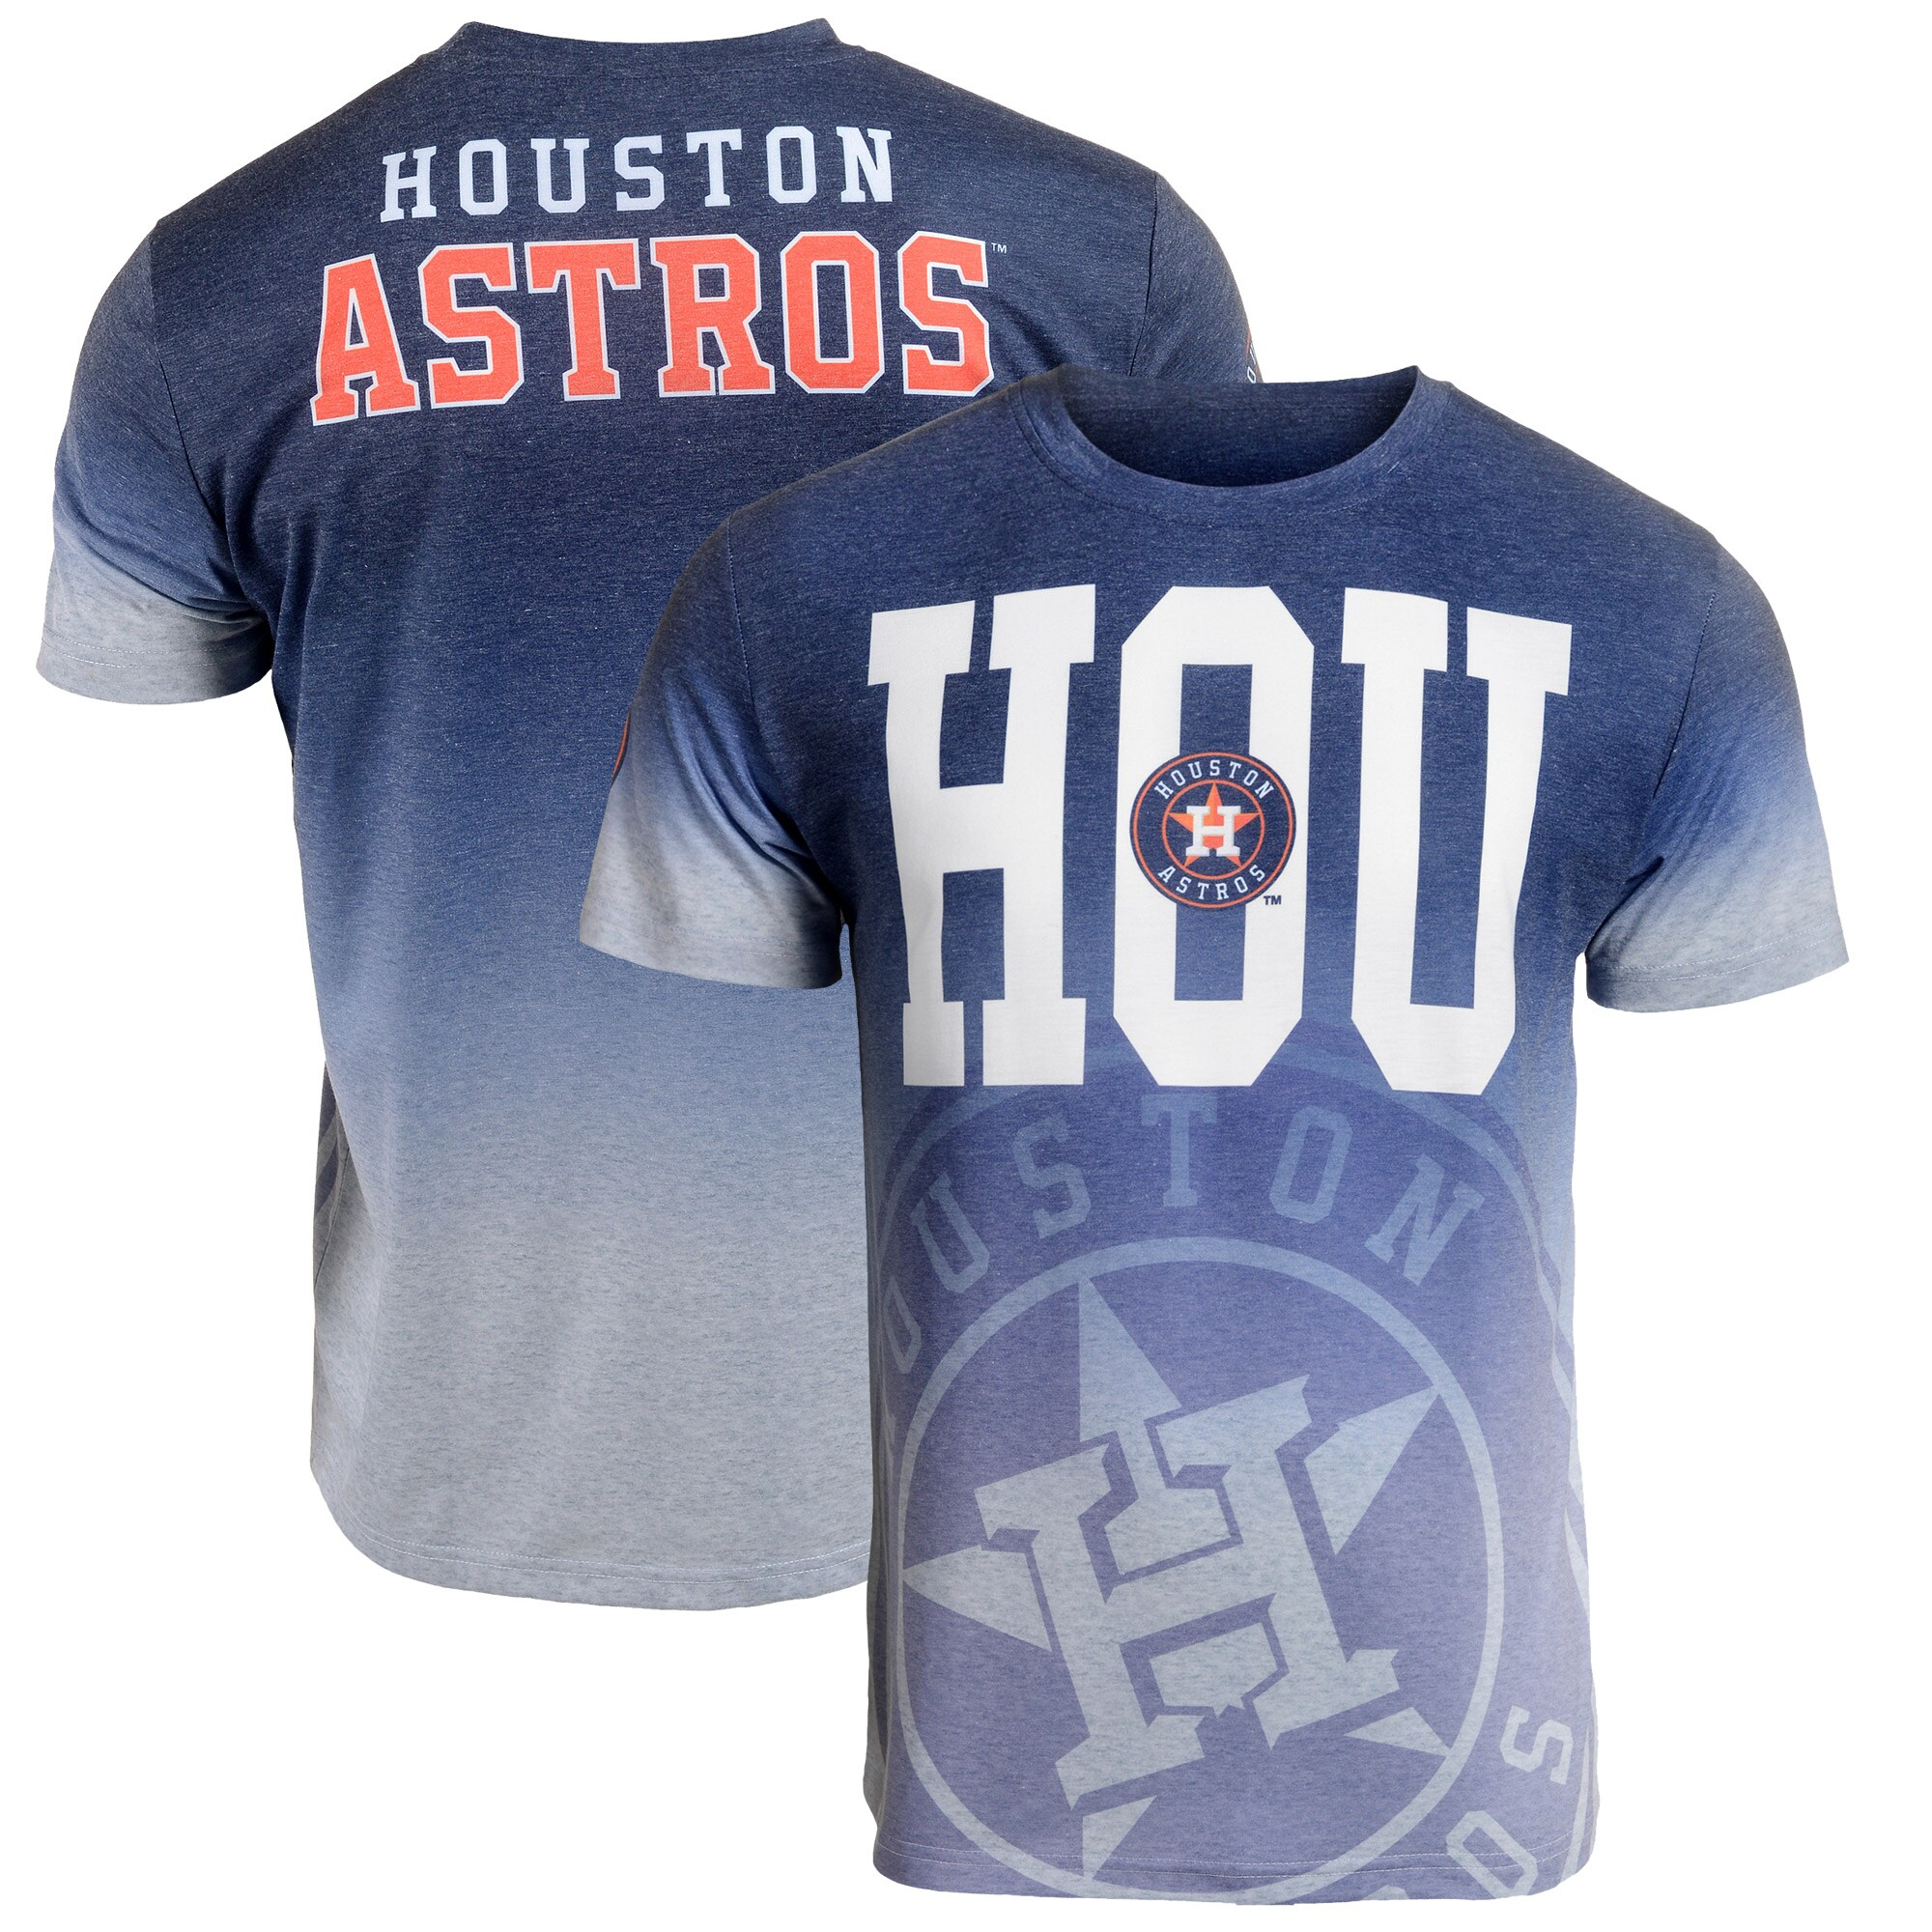 Houston Astros Gradient Sublimated T-Shirt - Navy/Gray